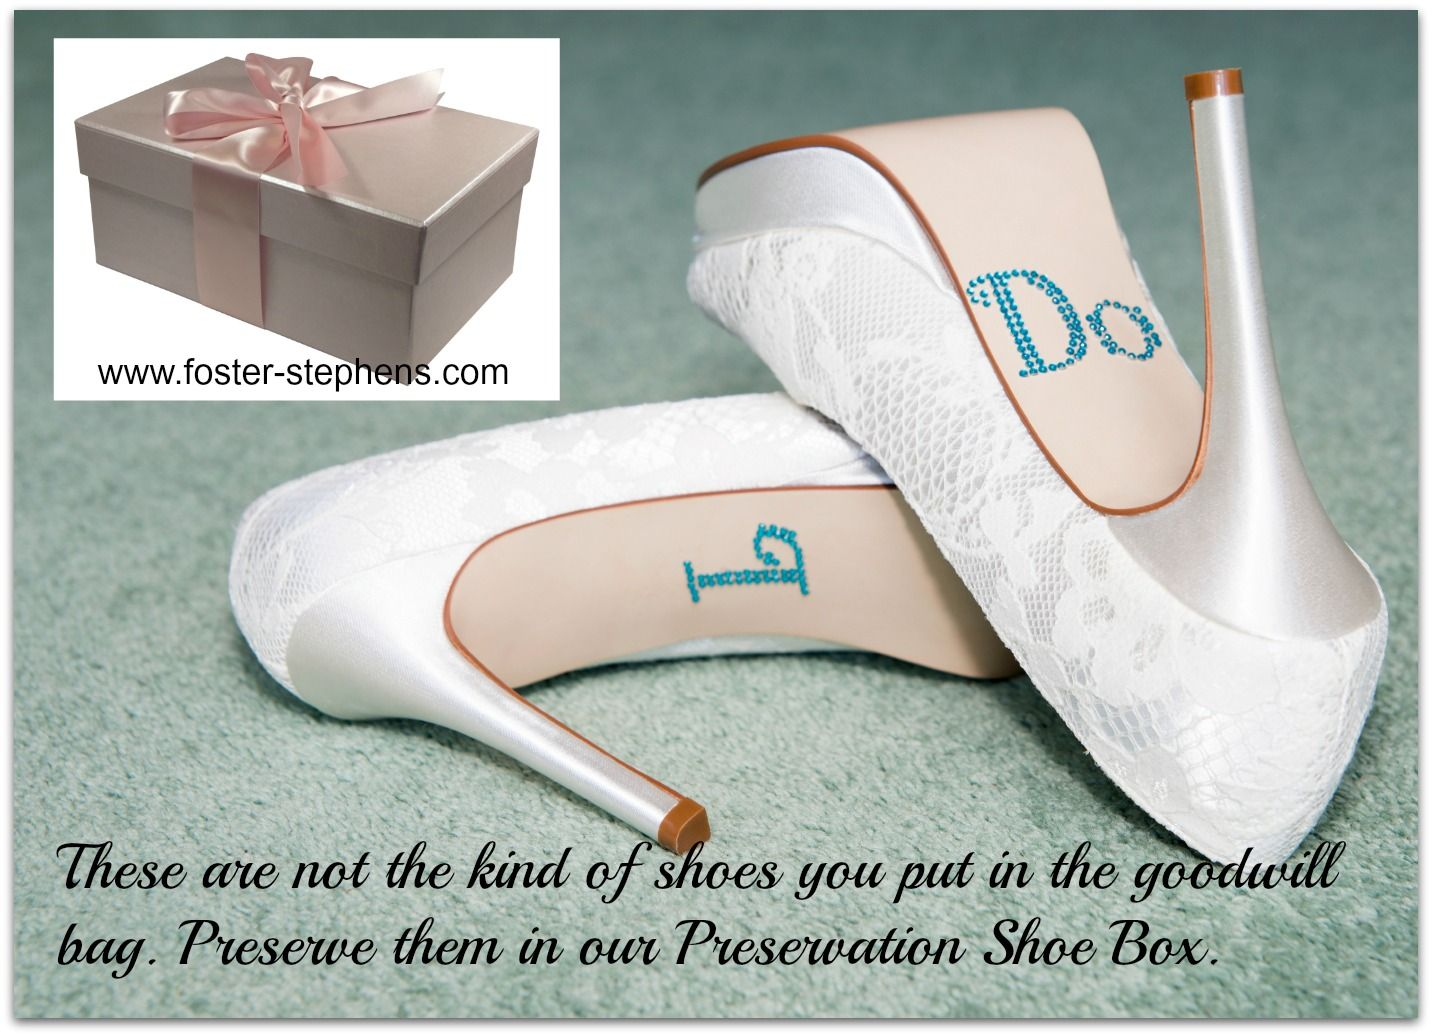 Wedding dress preservation box  We have everything from handmade boxes to archival storage boxes for